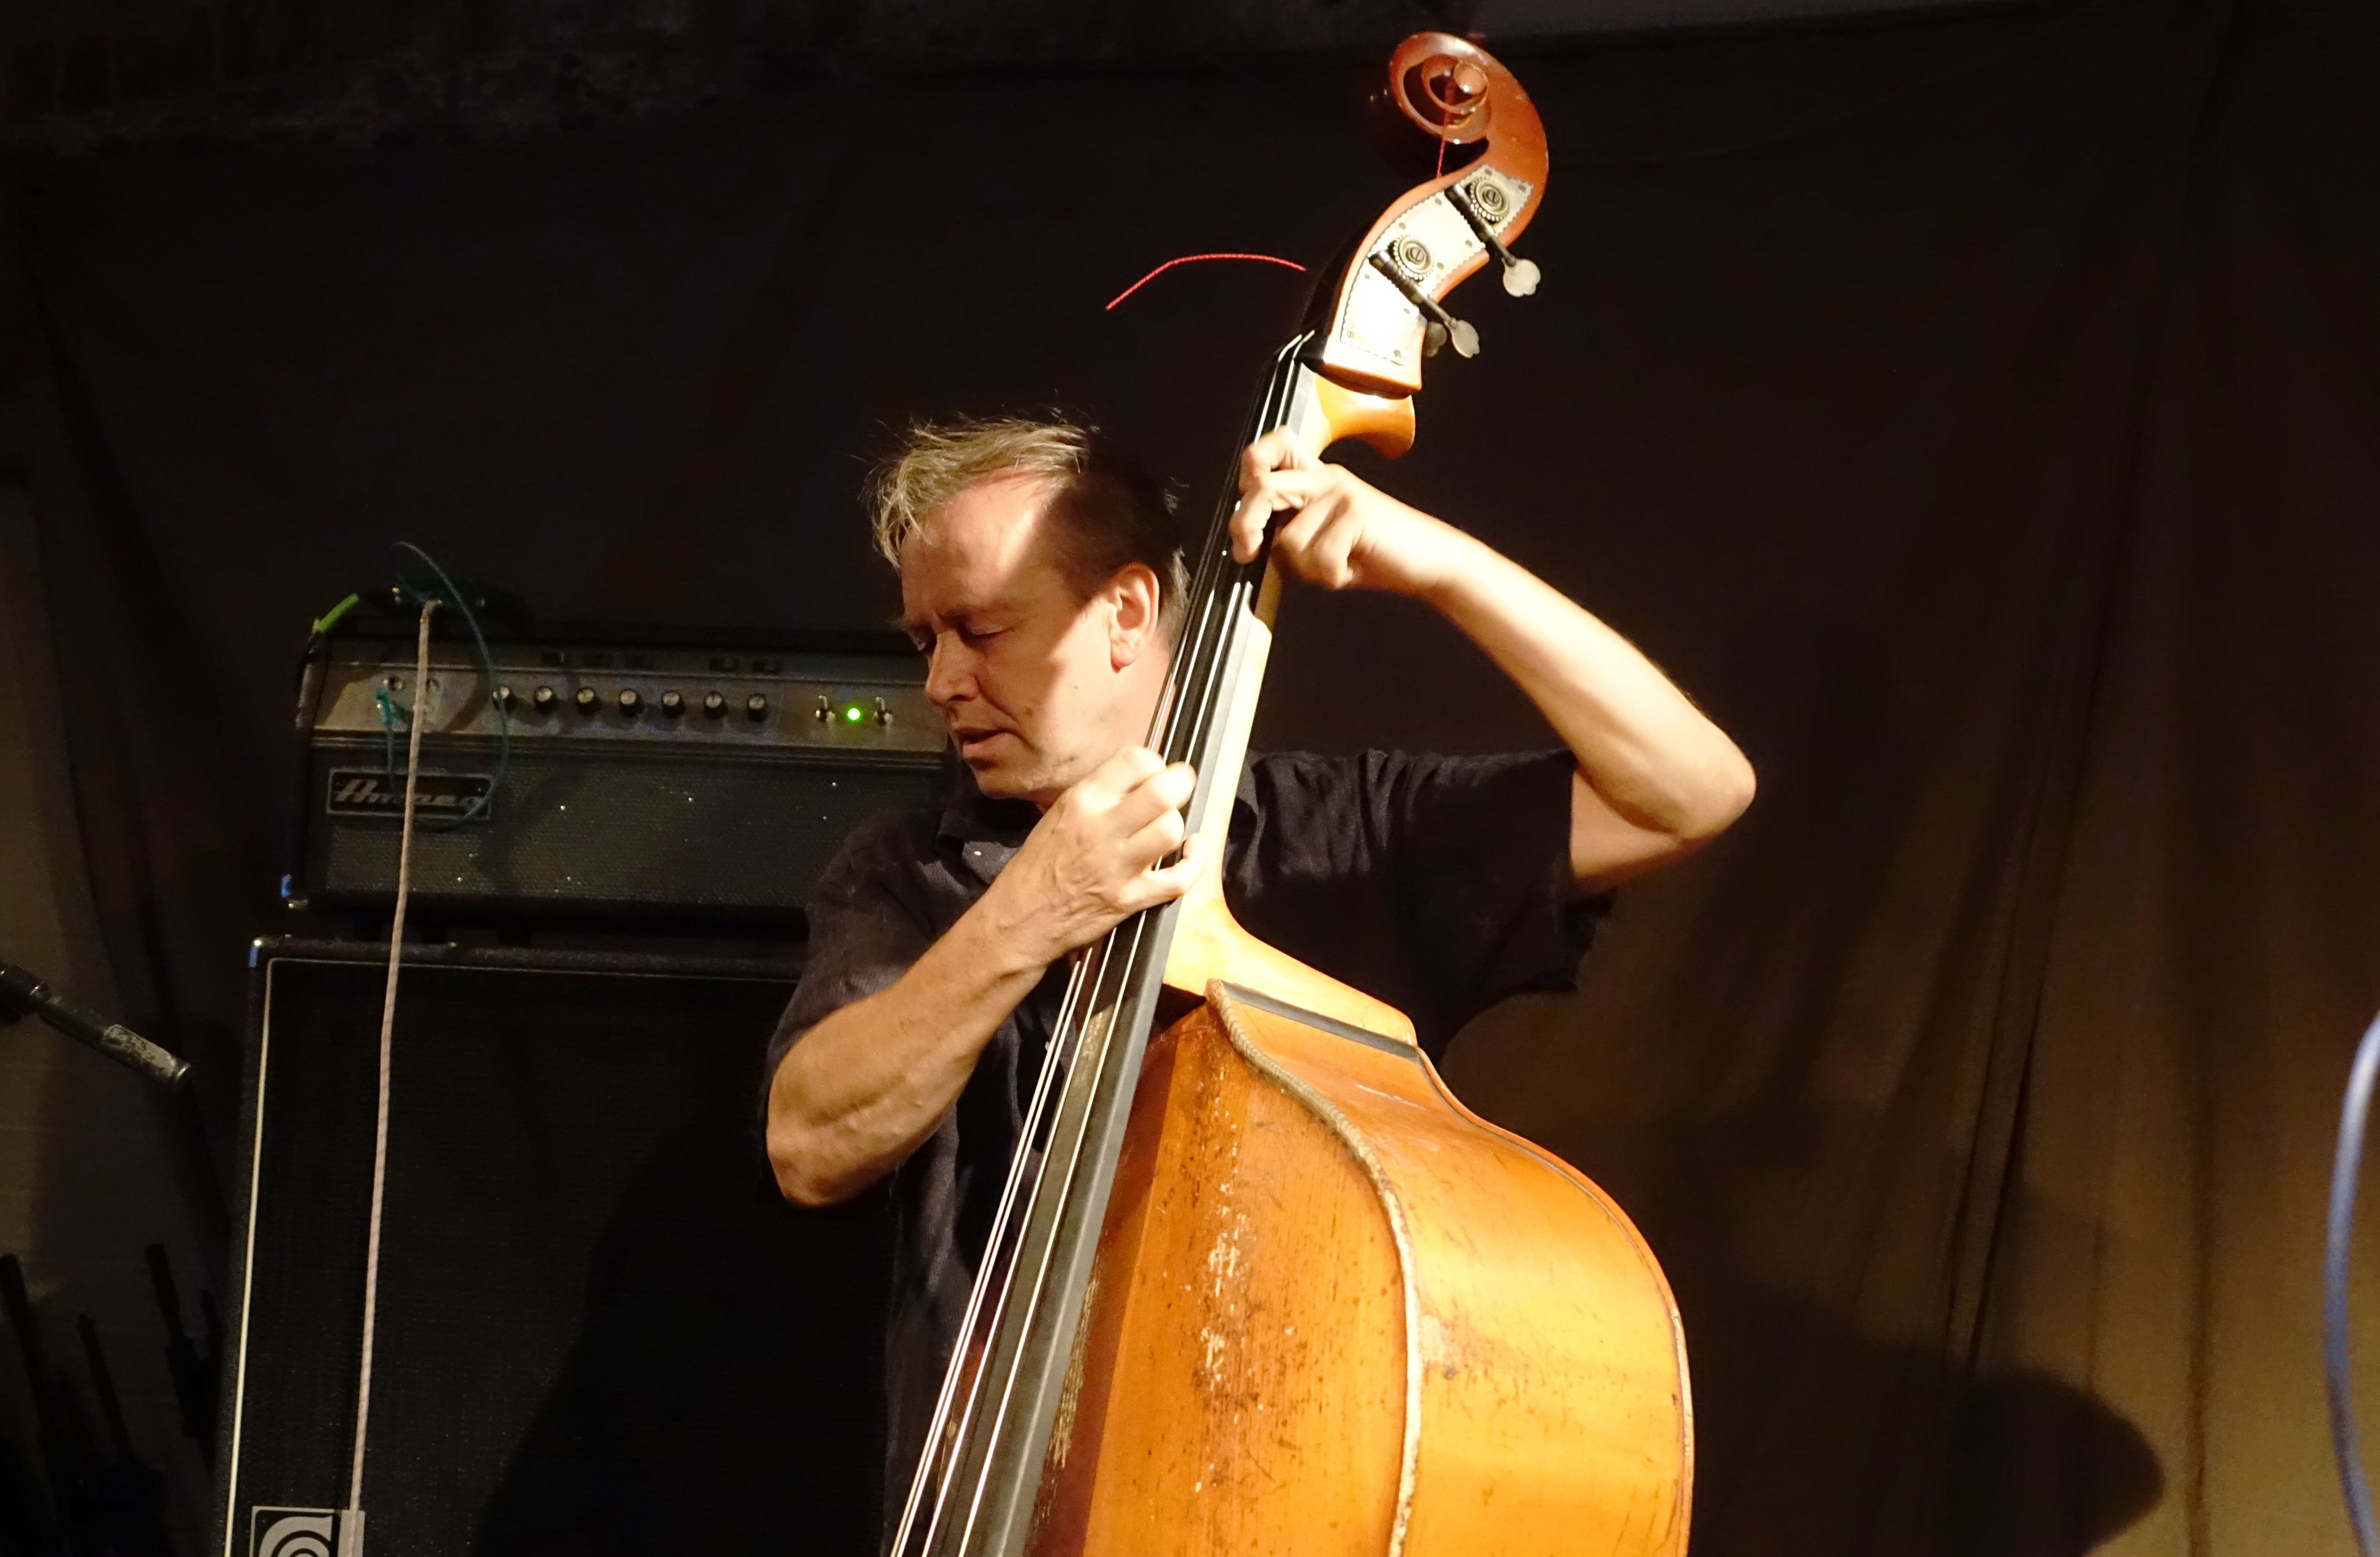 John Edwards at Cafe Oto, London in August 2018